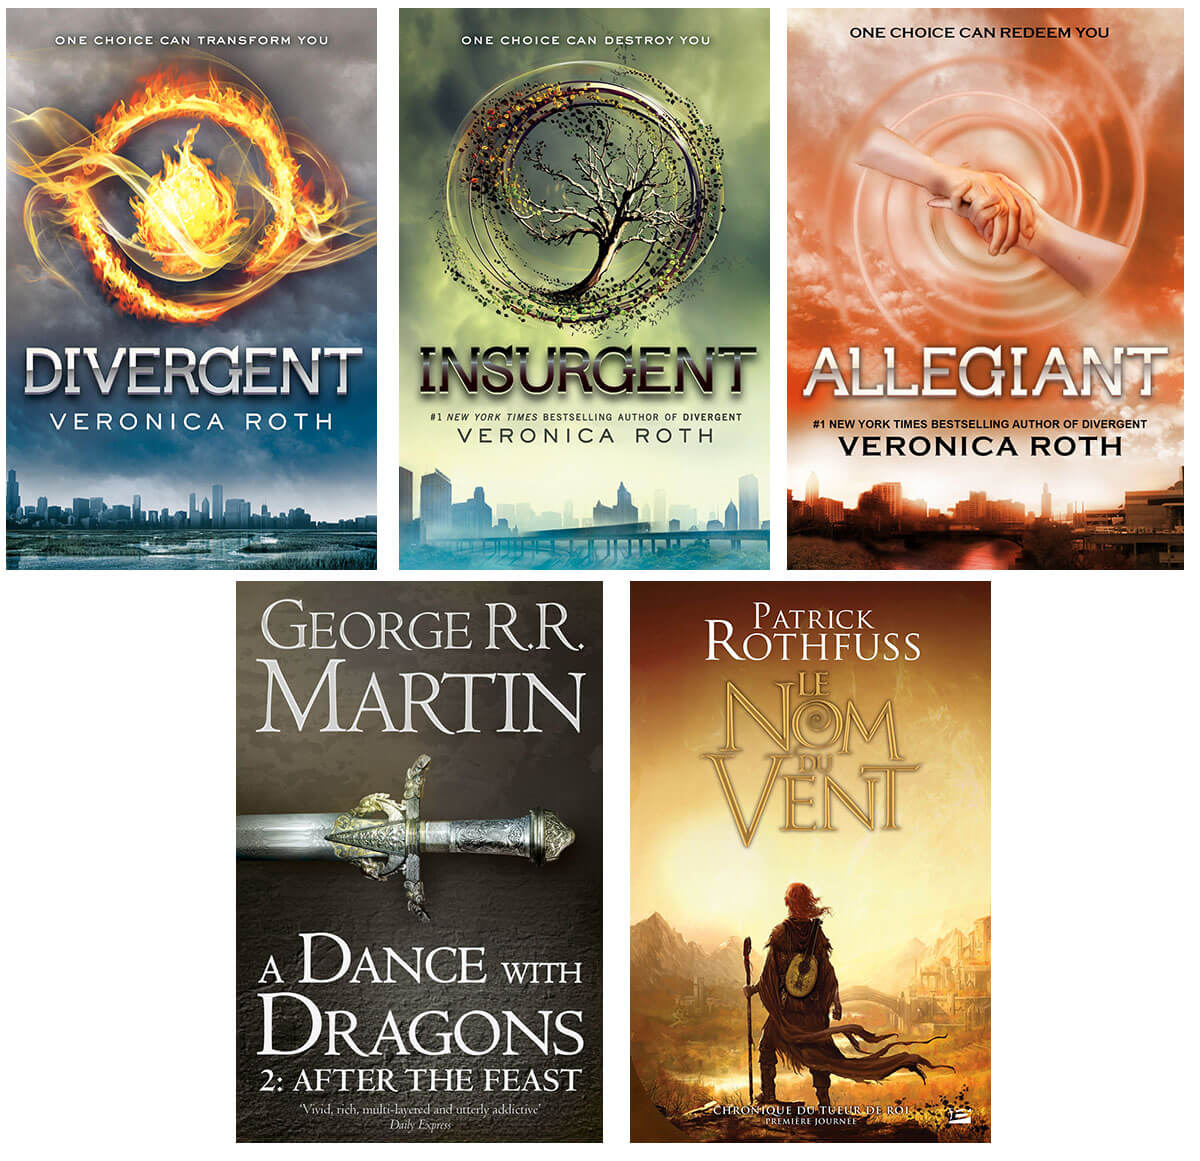 Fantasy Book Cover Ideas : Book cover ideas that can and will inspire your next